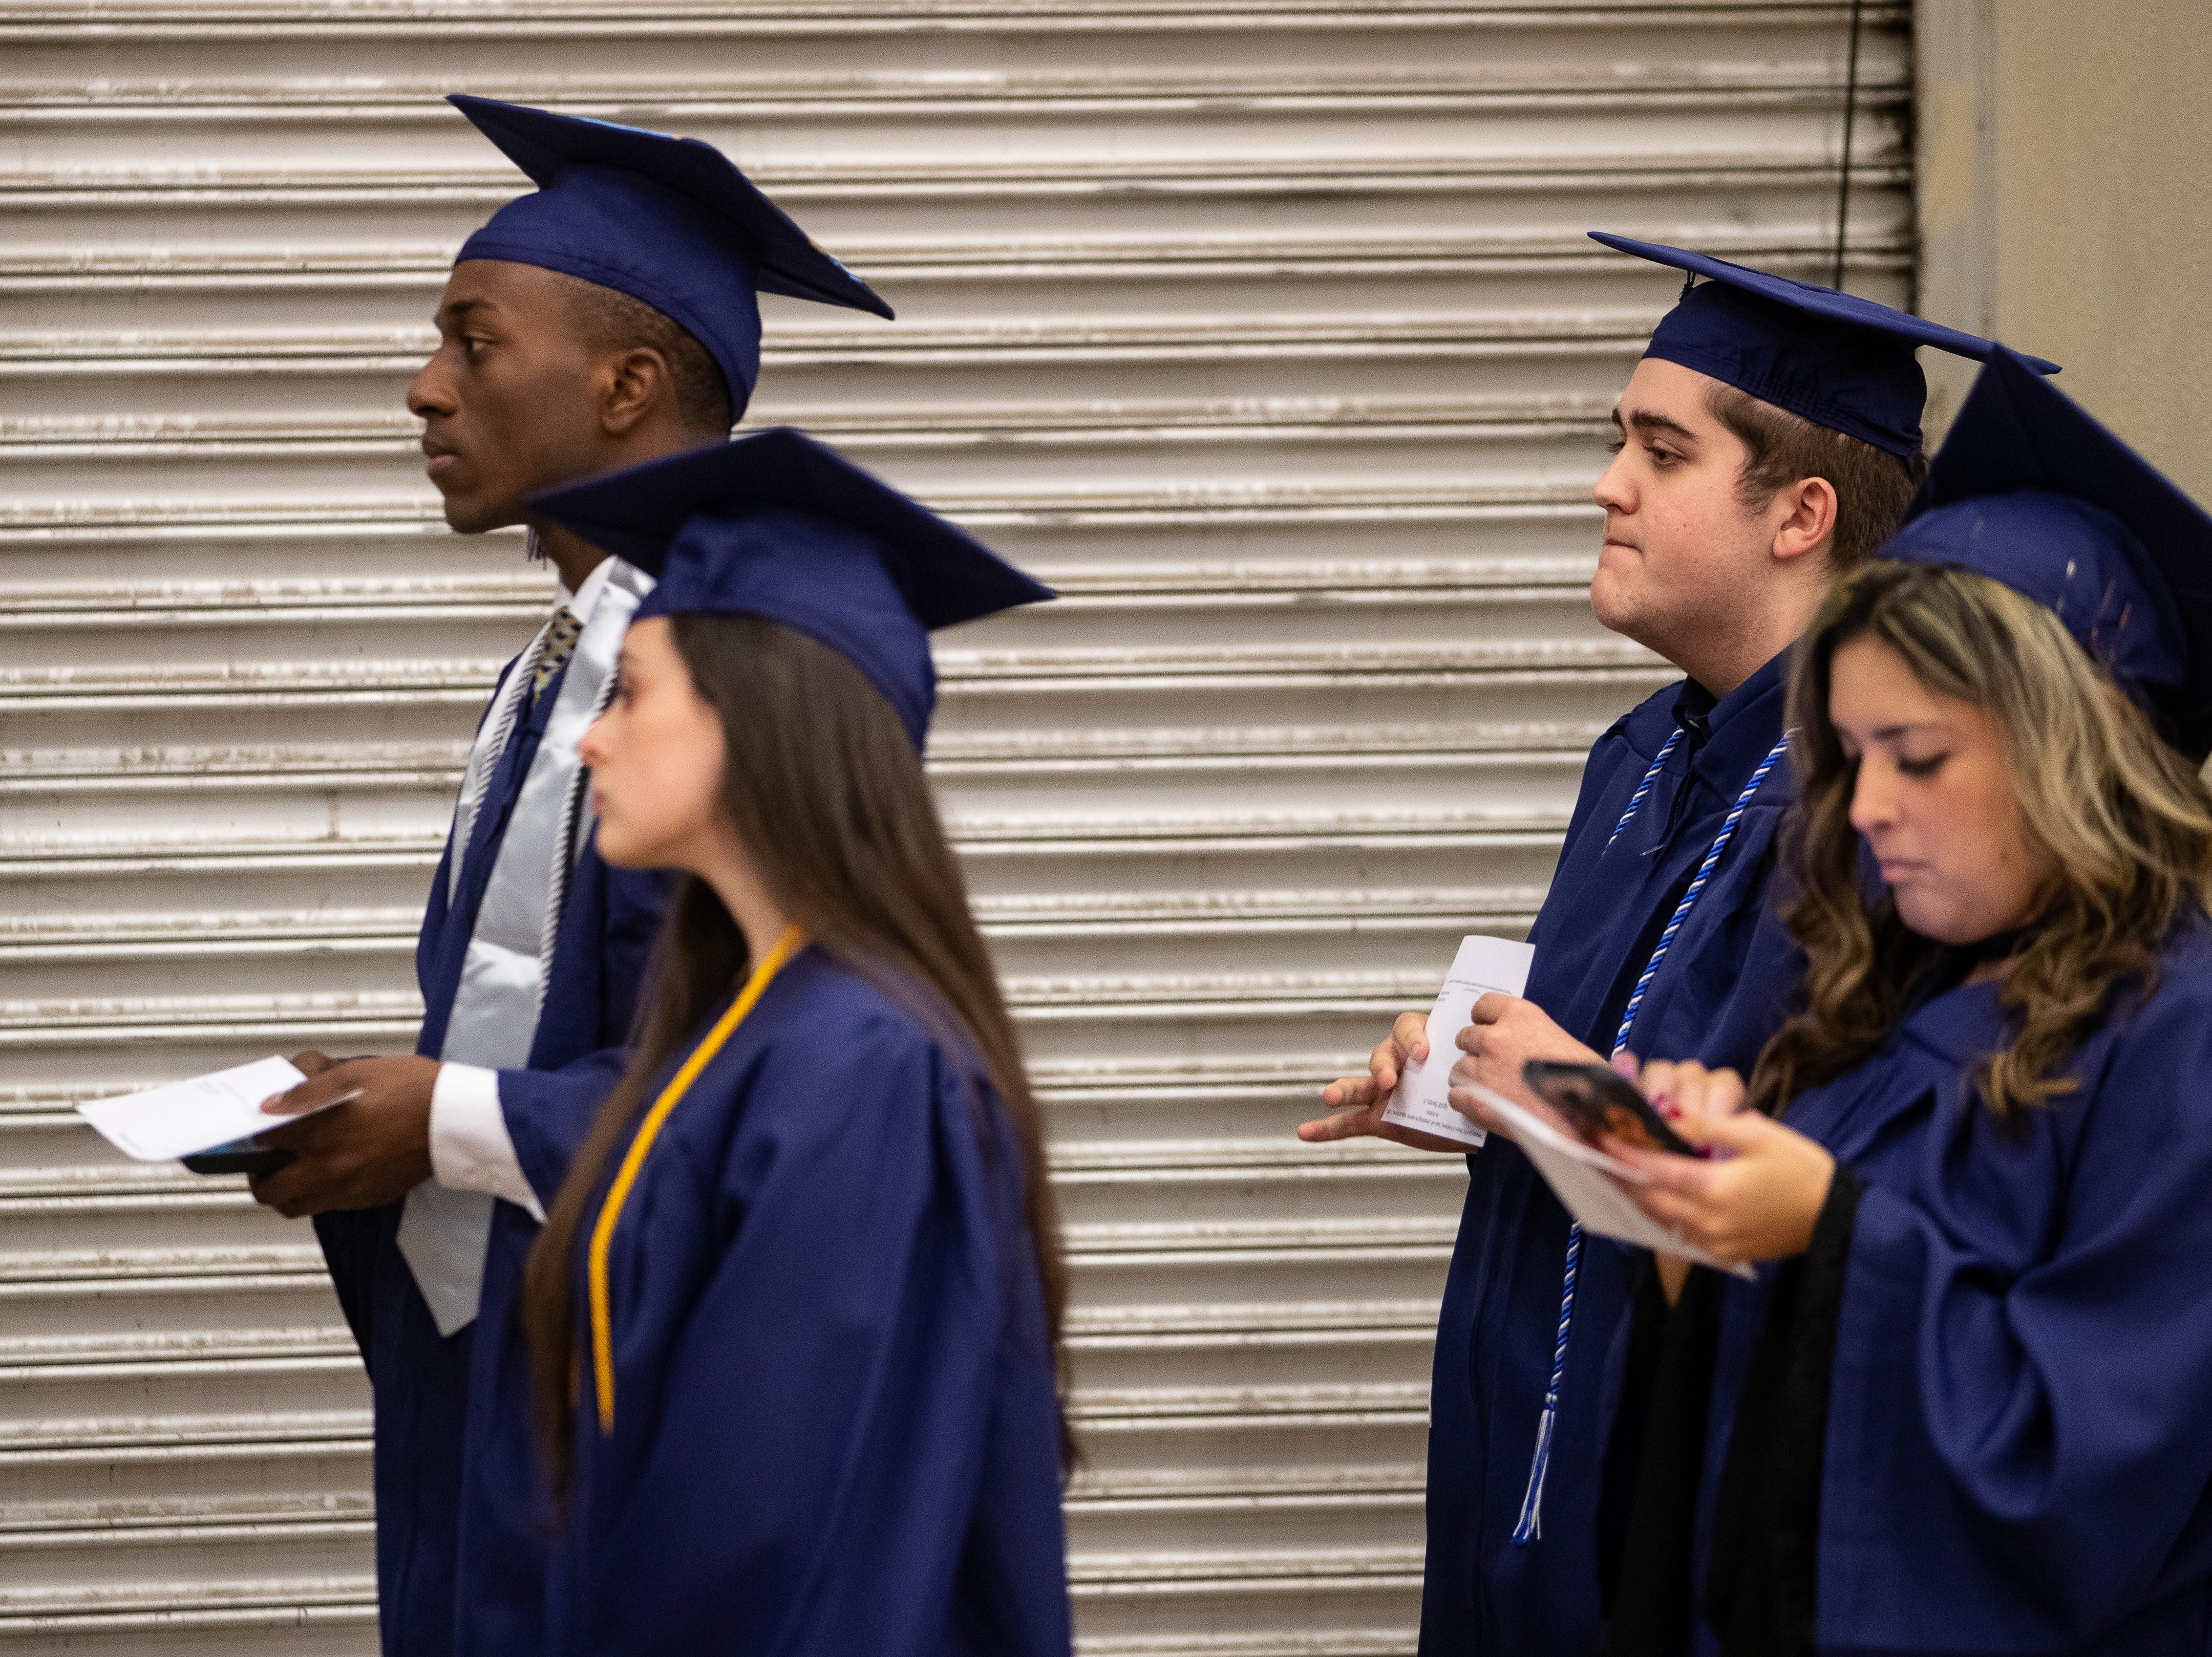 Flour Bluff's High School's Jeremiah Baldwin on his phone as he waits for the start of Del Mar's fall commencement ceremony on Thursday, Dec. 13, 2018.